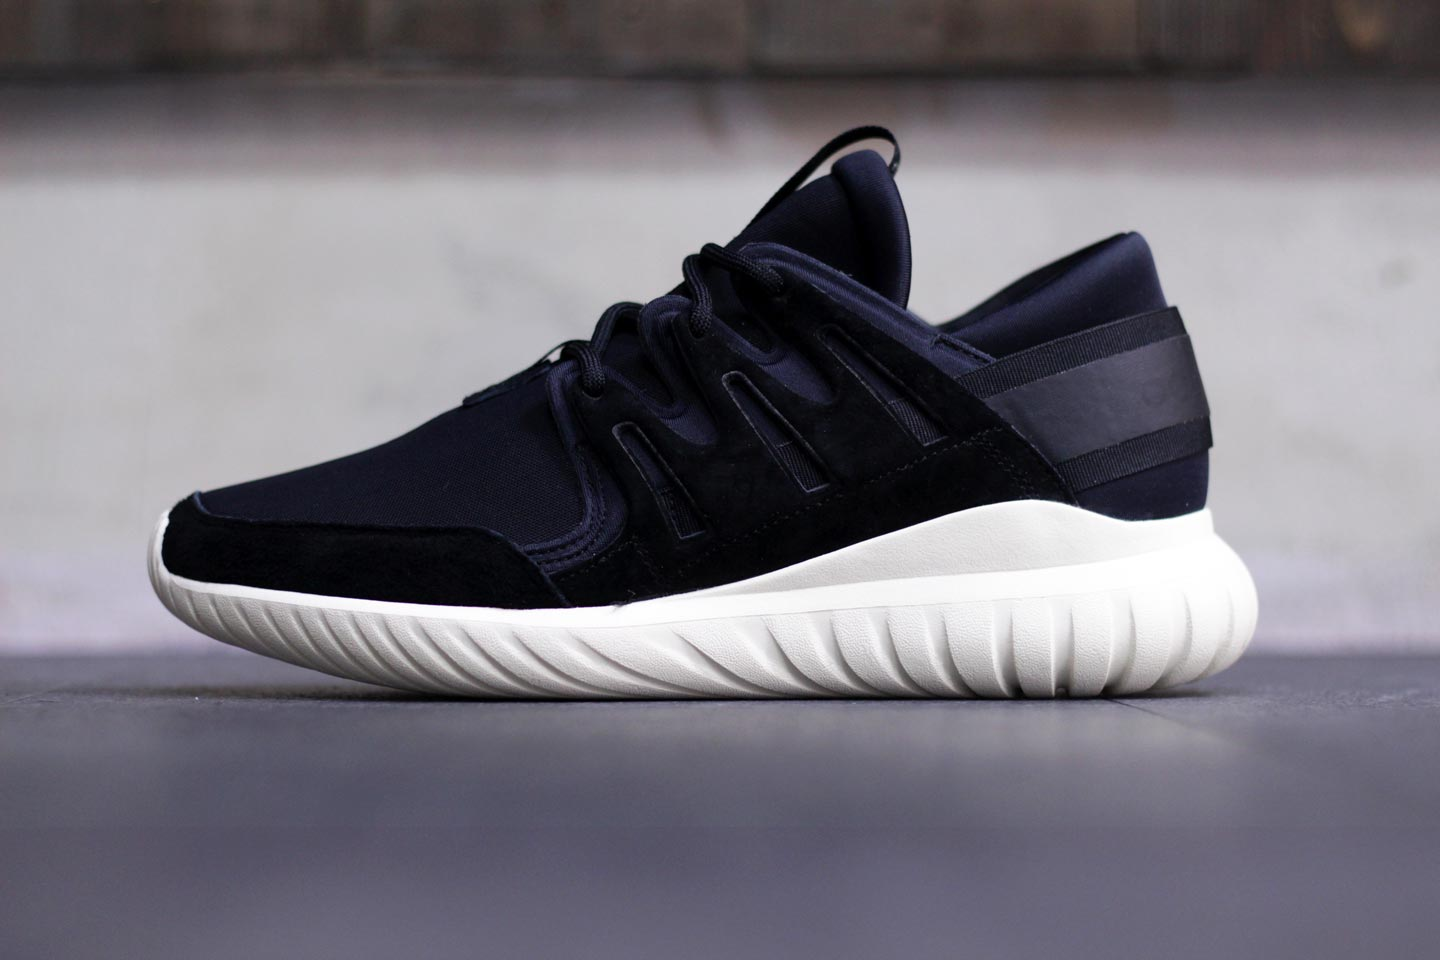 Adidas Originals Tubular Men 's